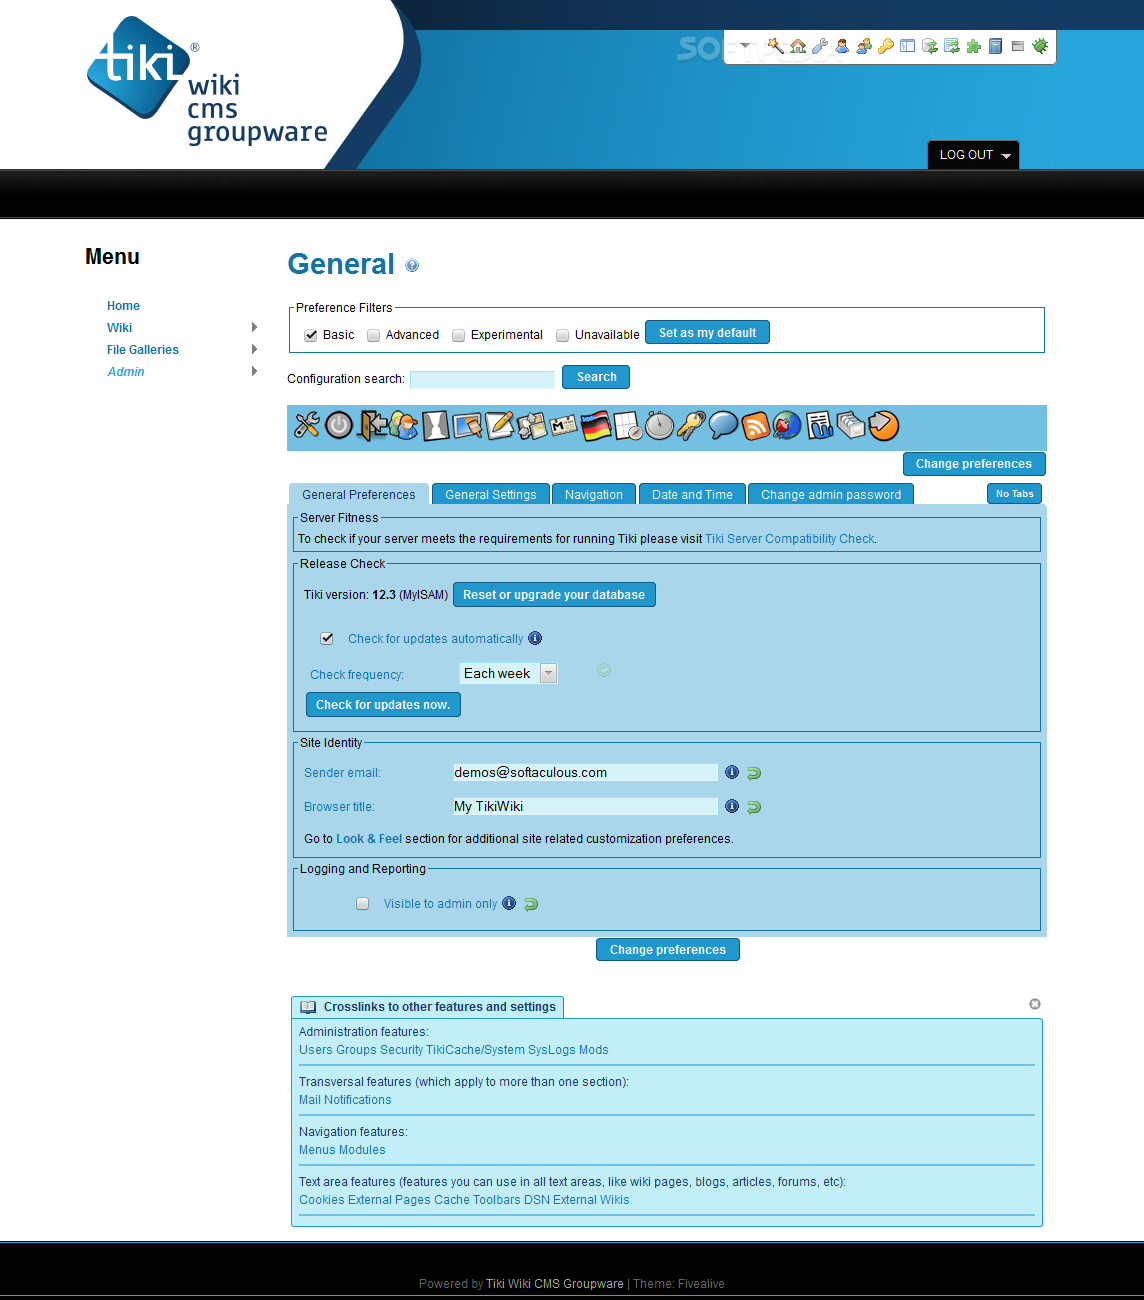 Tiki Wiki CMS Groupware - It comes with an all-encompassing administration panel